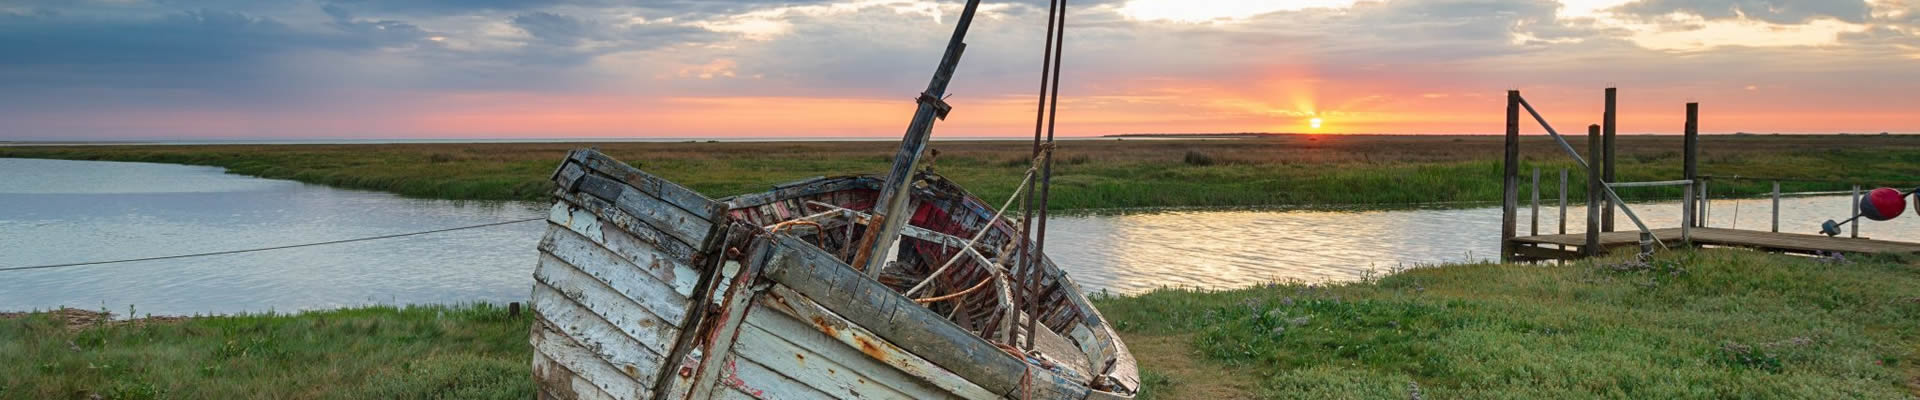 Sunrise over abandoned fishing boat at Thornham, Norfolk